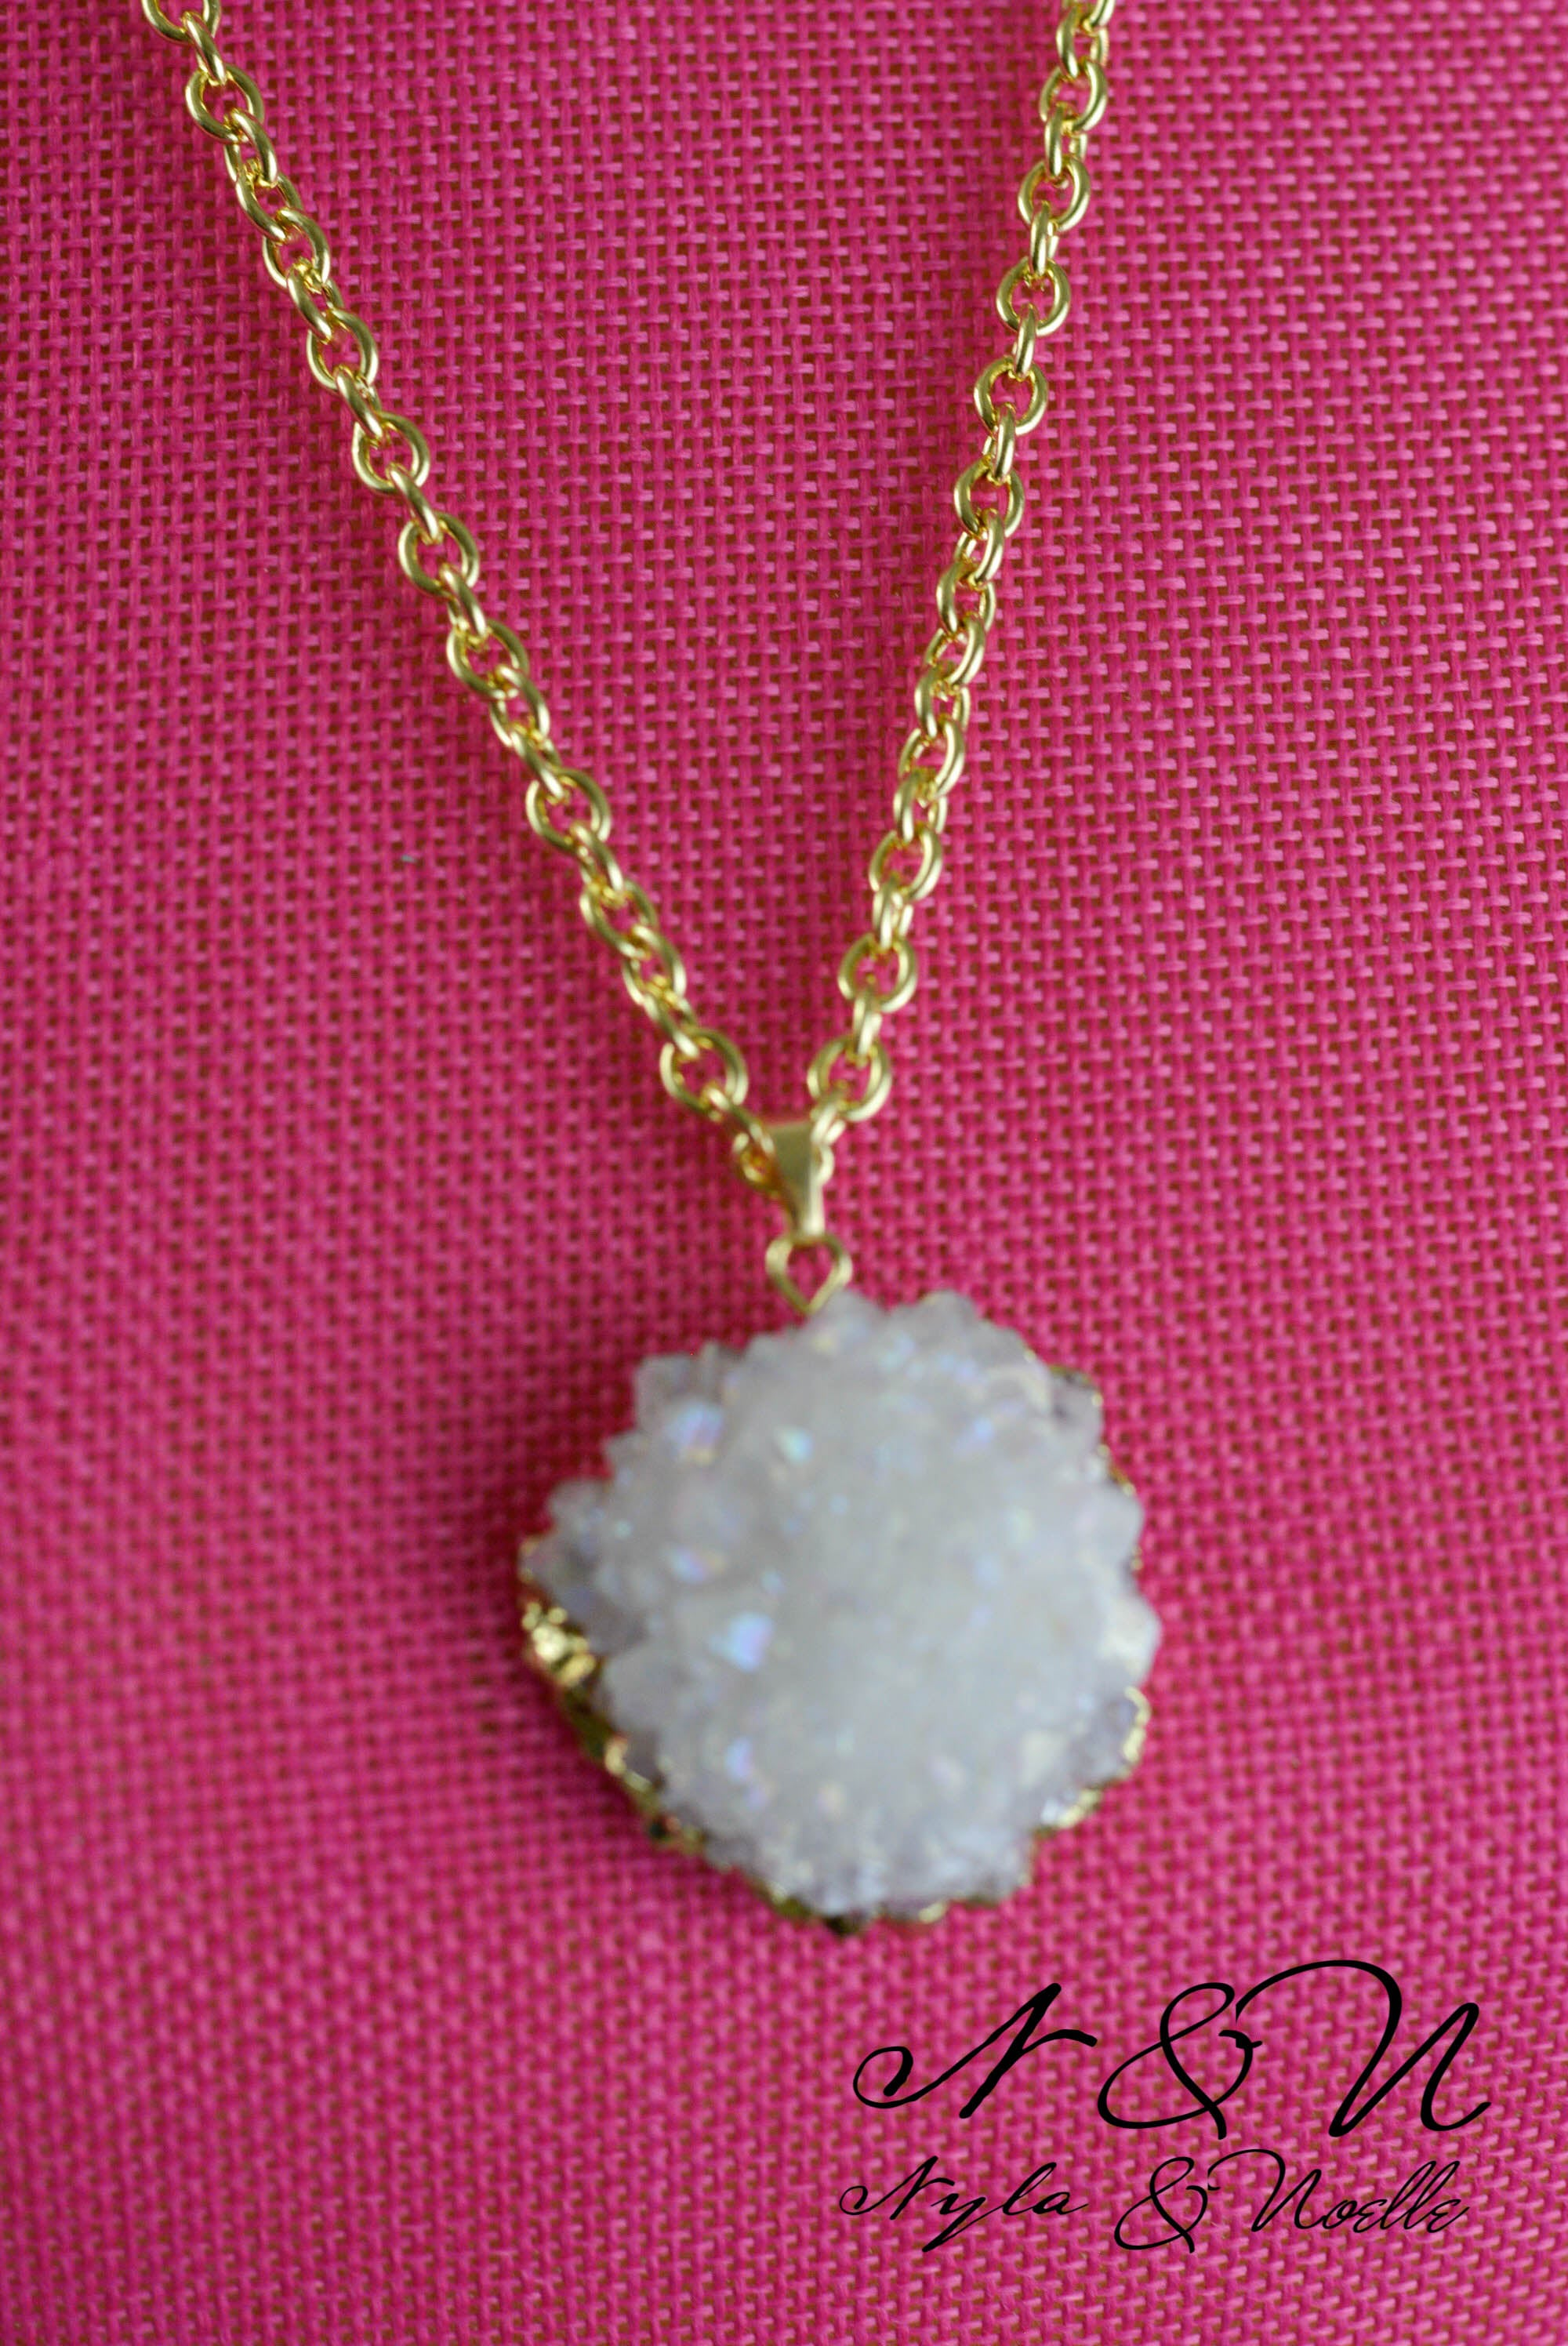 WINTERFELL - Gold Tone necklace with Quartz Crystal Pendant